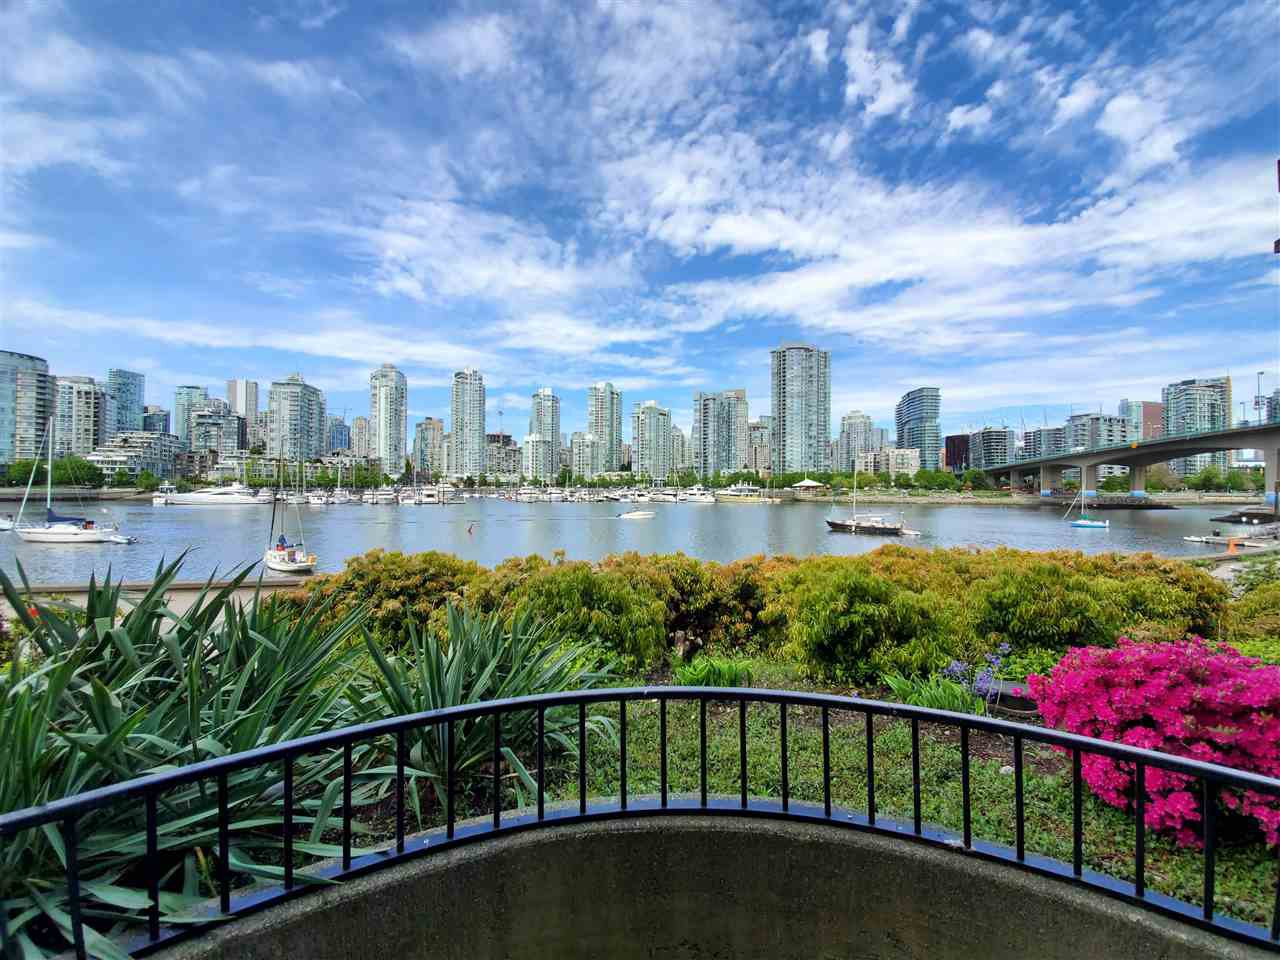 """Main Photo: 113 1859 SPYGLASS Place in Vancouver: False Creek Condo for sale in """"San Remo Court"""" (Vancouver West)  : MLS®# R2455920"""